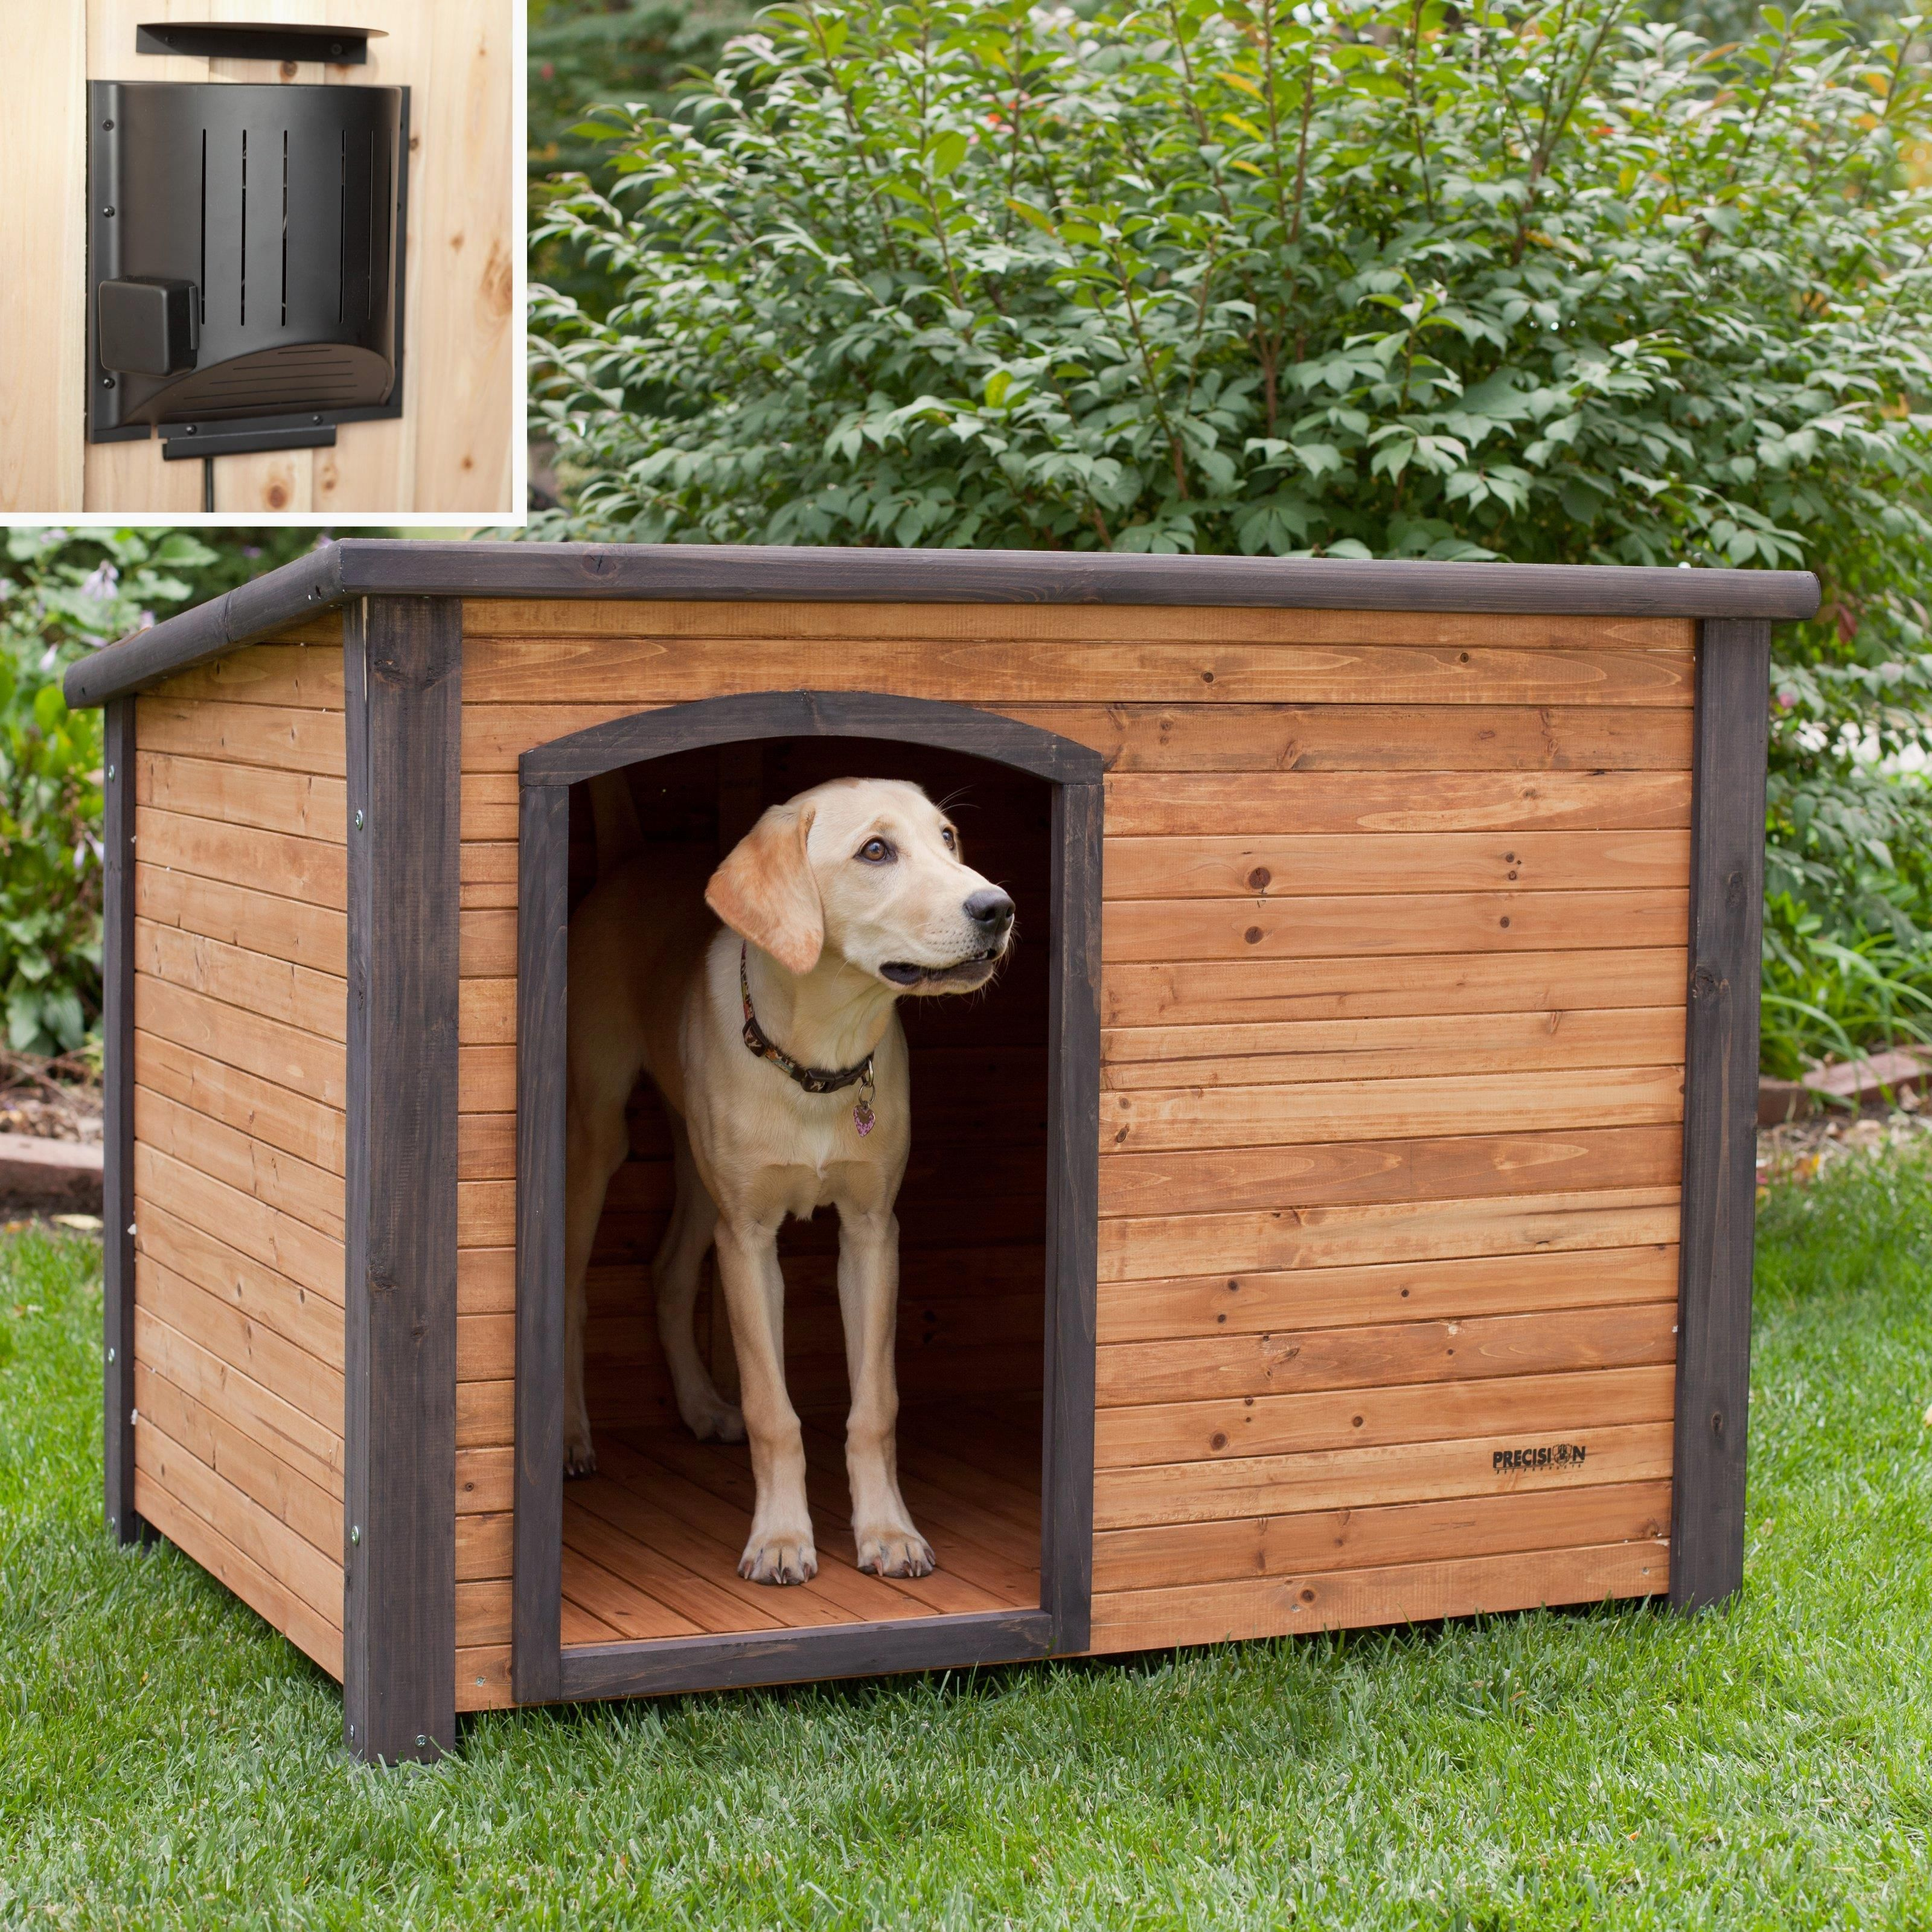 Pin By Jeff Stanley On Fun With Pets Cool Dog Houses Insulated